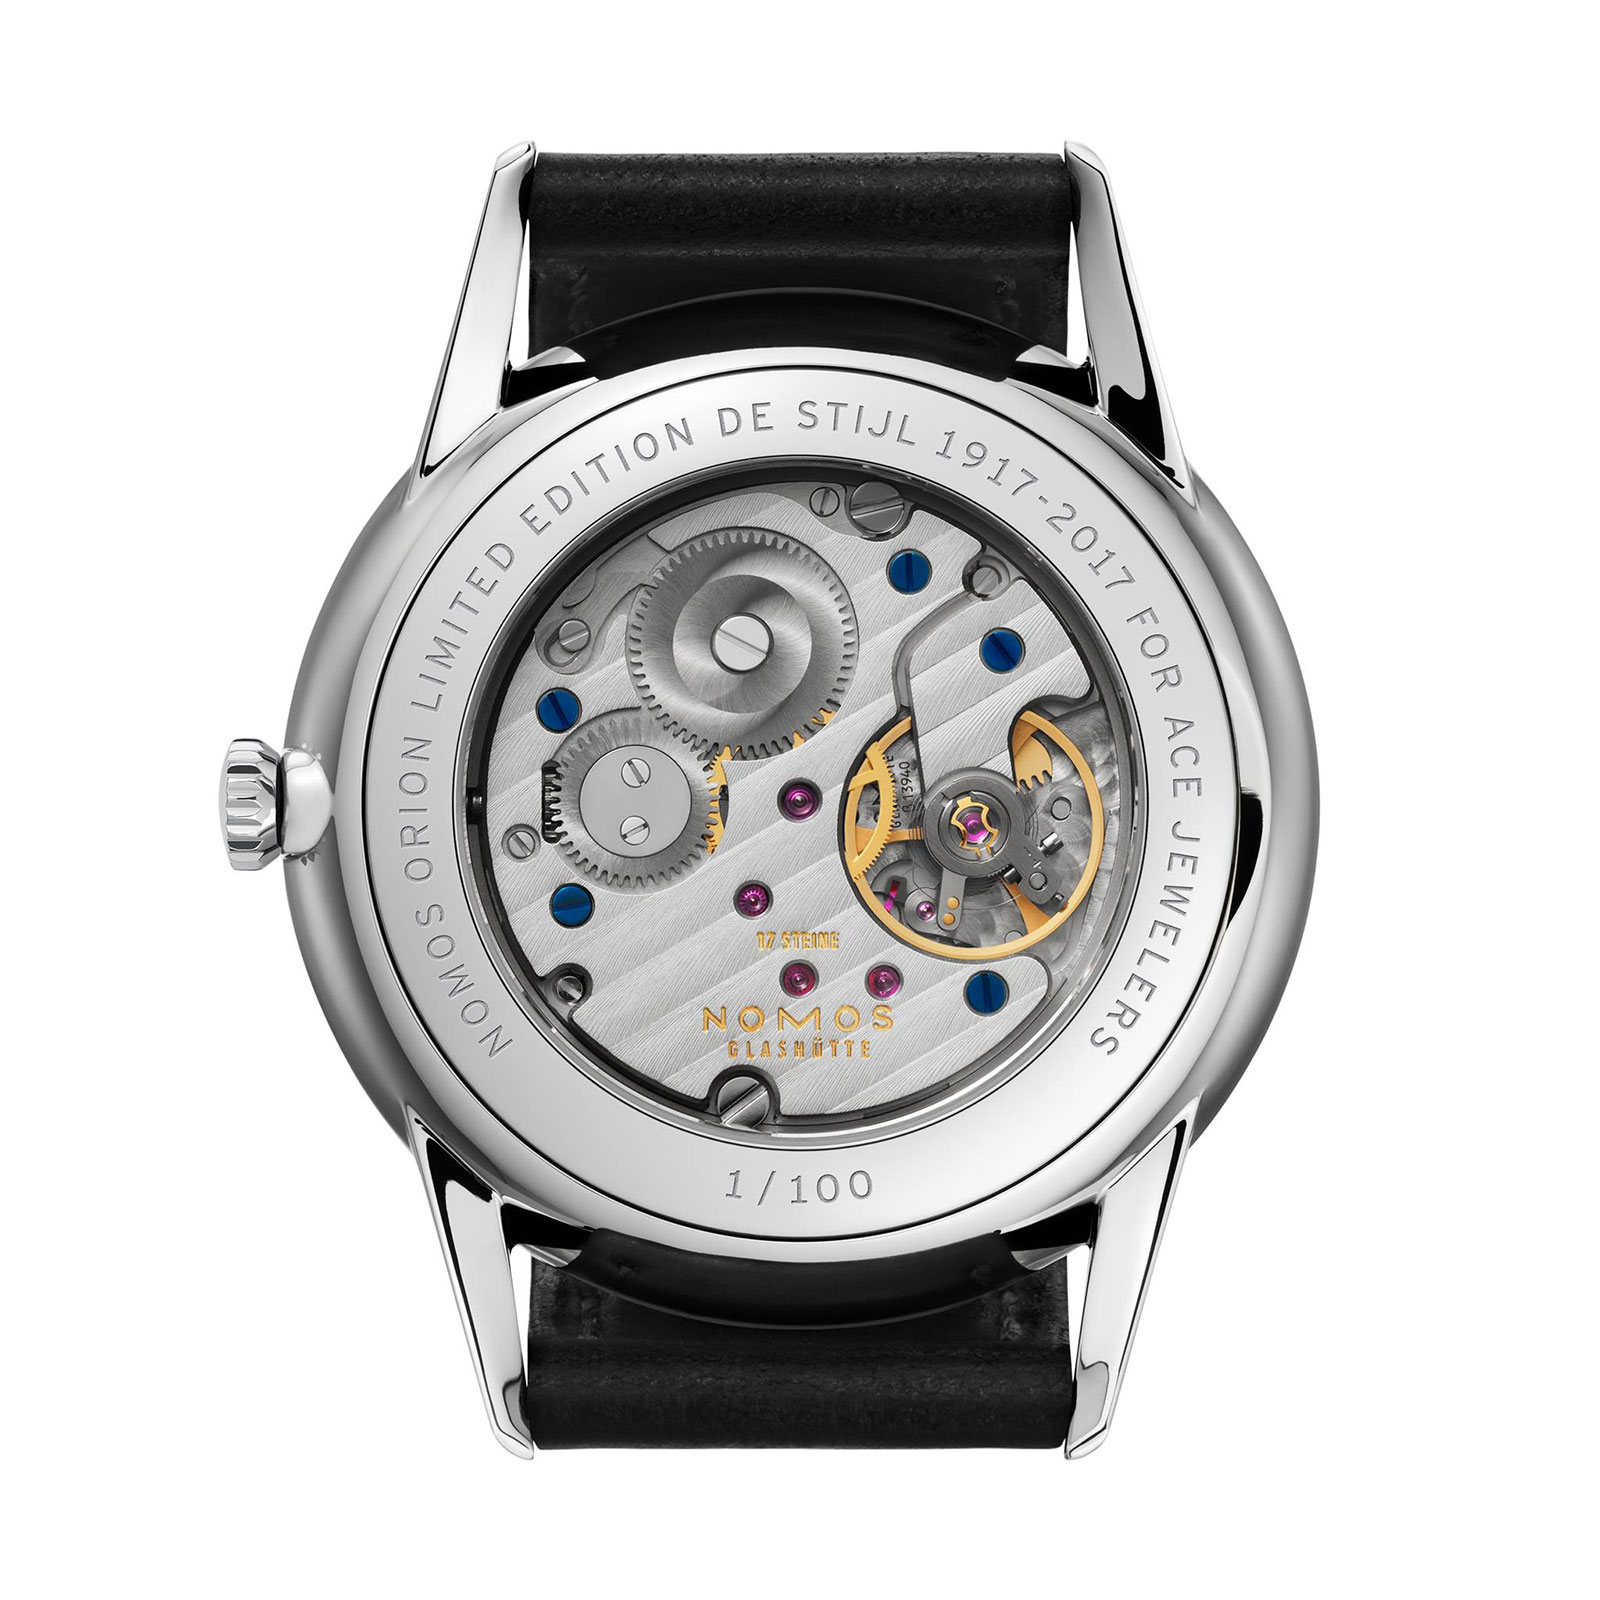 Nomos Orion 38 De Stijl Ace Jewelers back